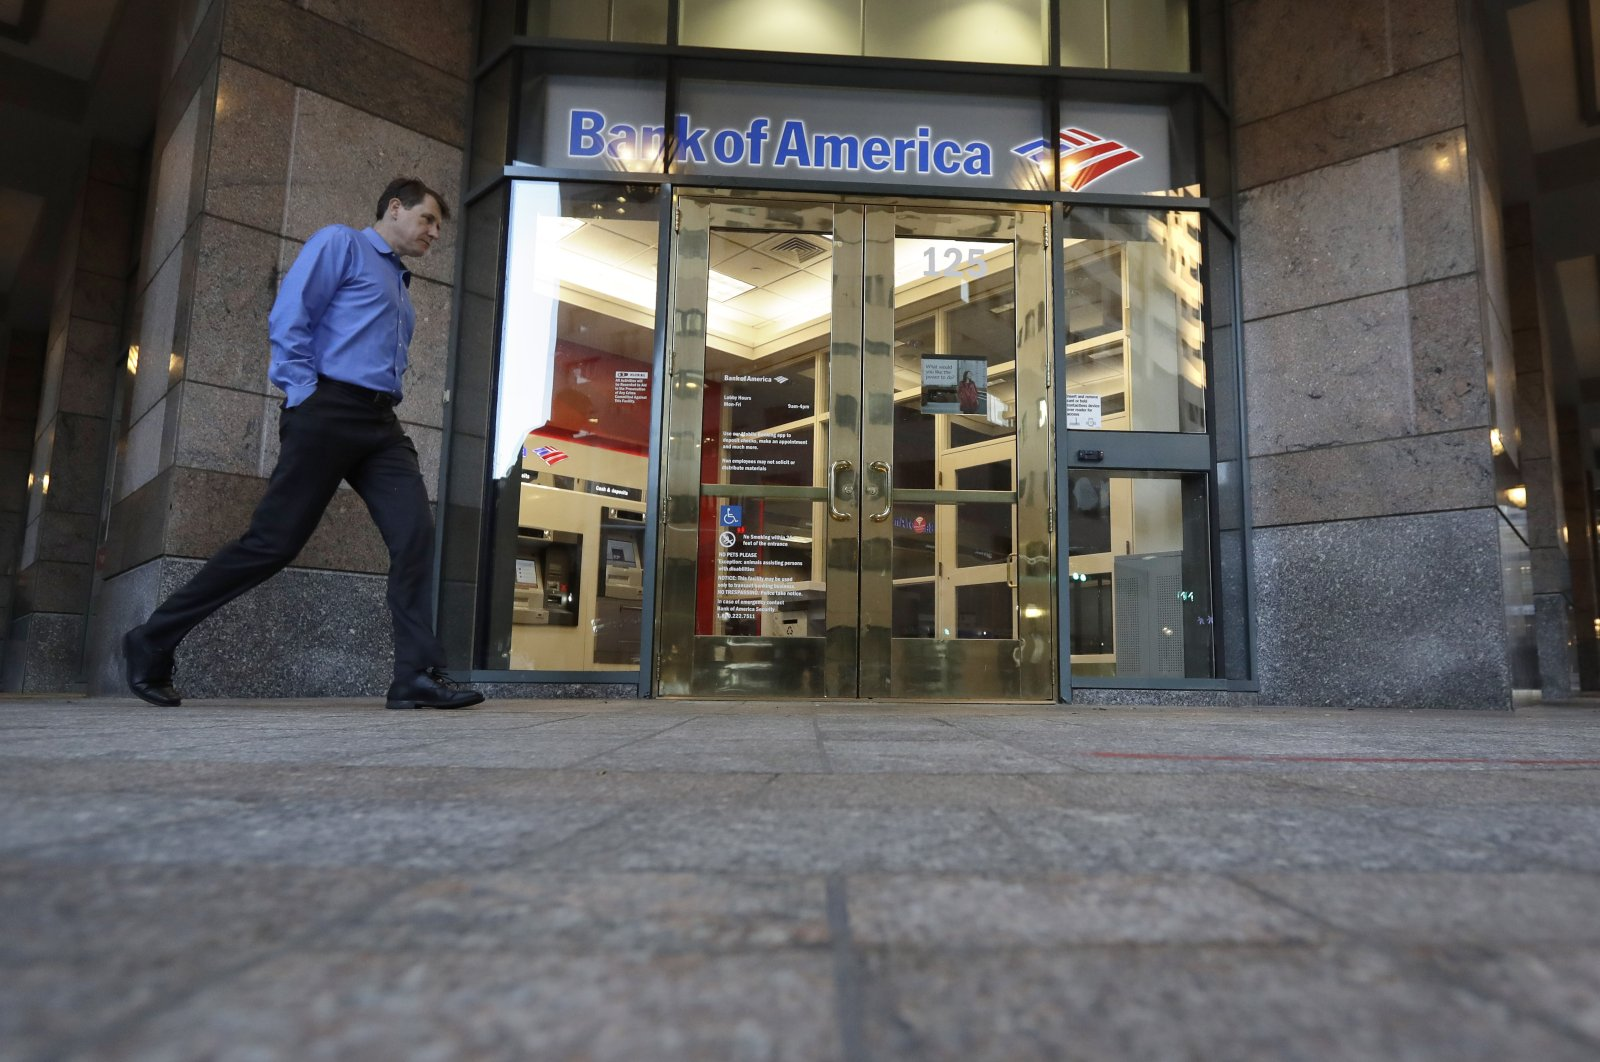 A passerby walks past the entrance to a Bank of America ATM, in Boston, Oct. 14, 2019. (AP Photo)